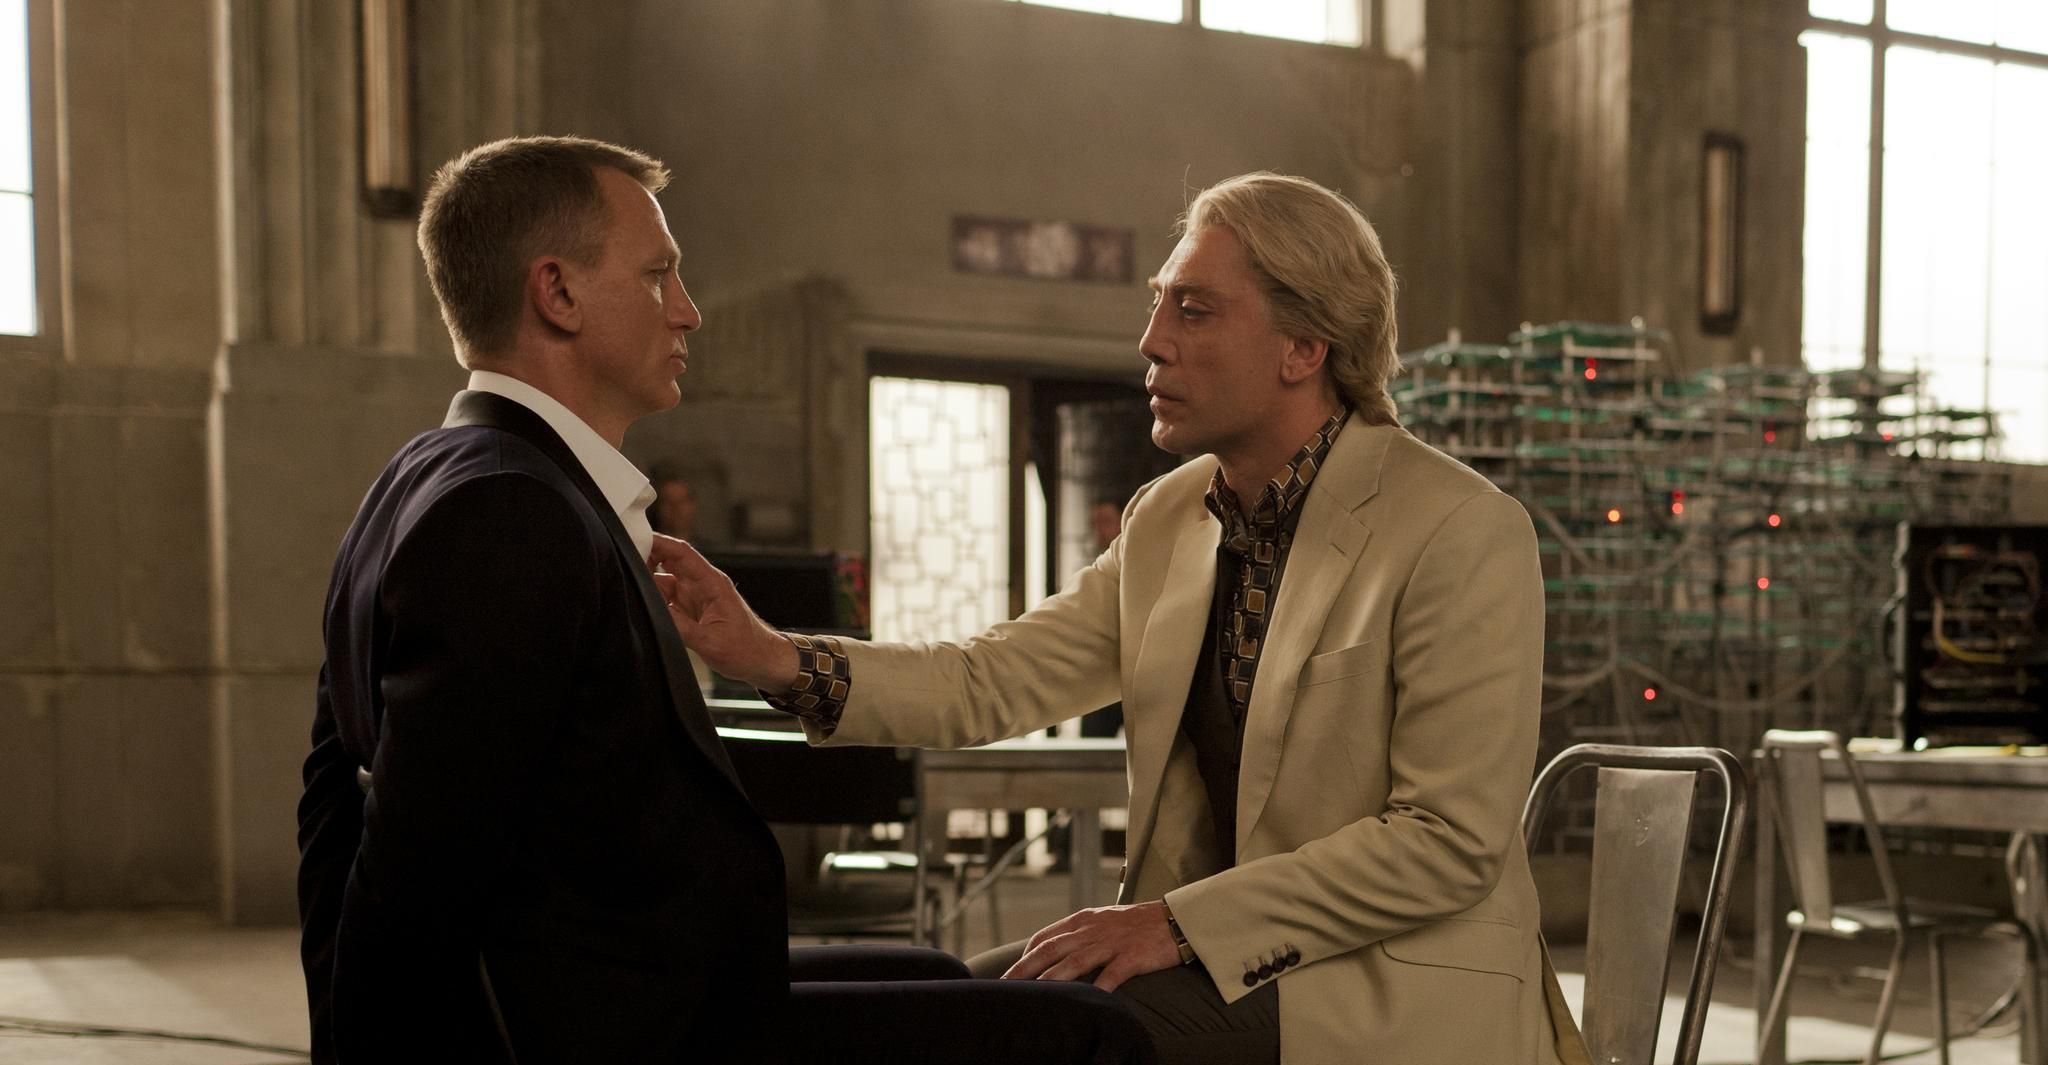 movie review sample skyfall film